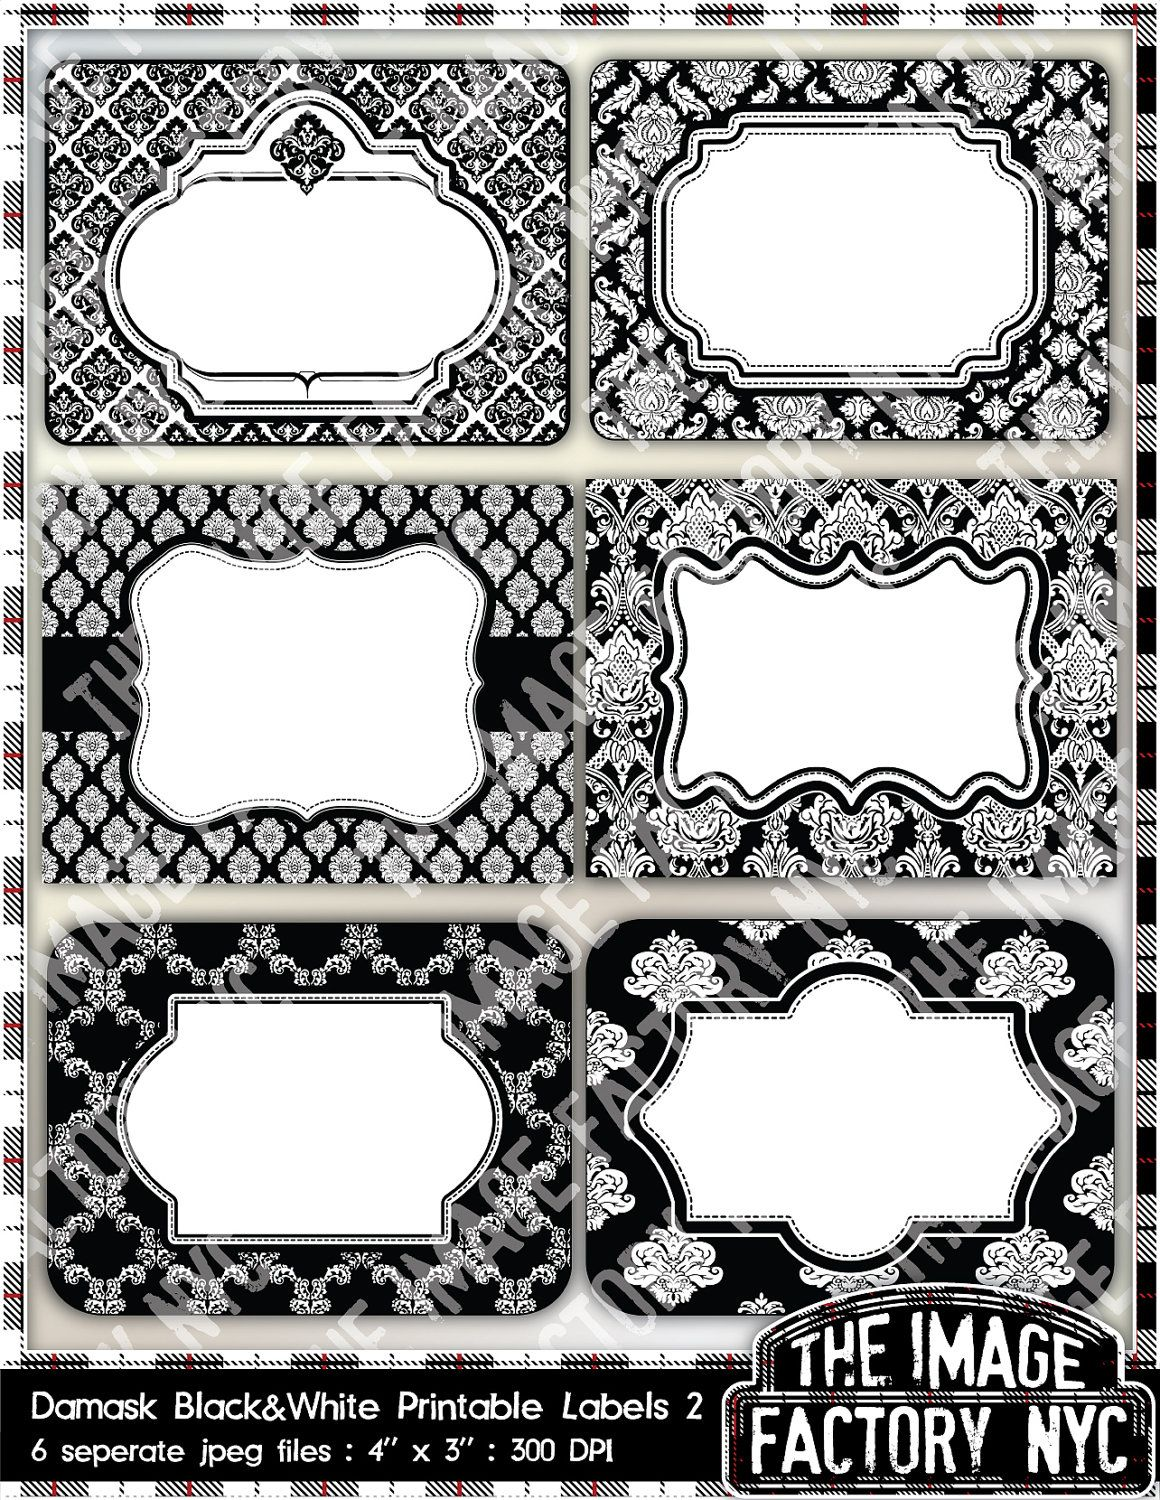 black and white damask printable labels & tags, for gift tags, place